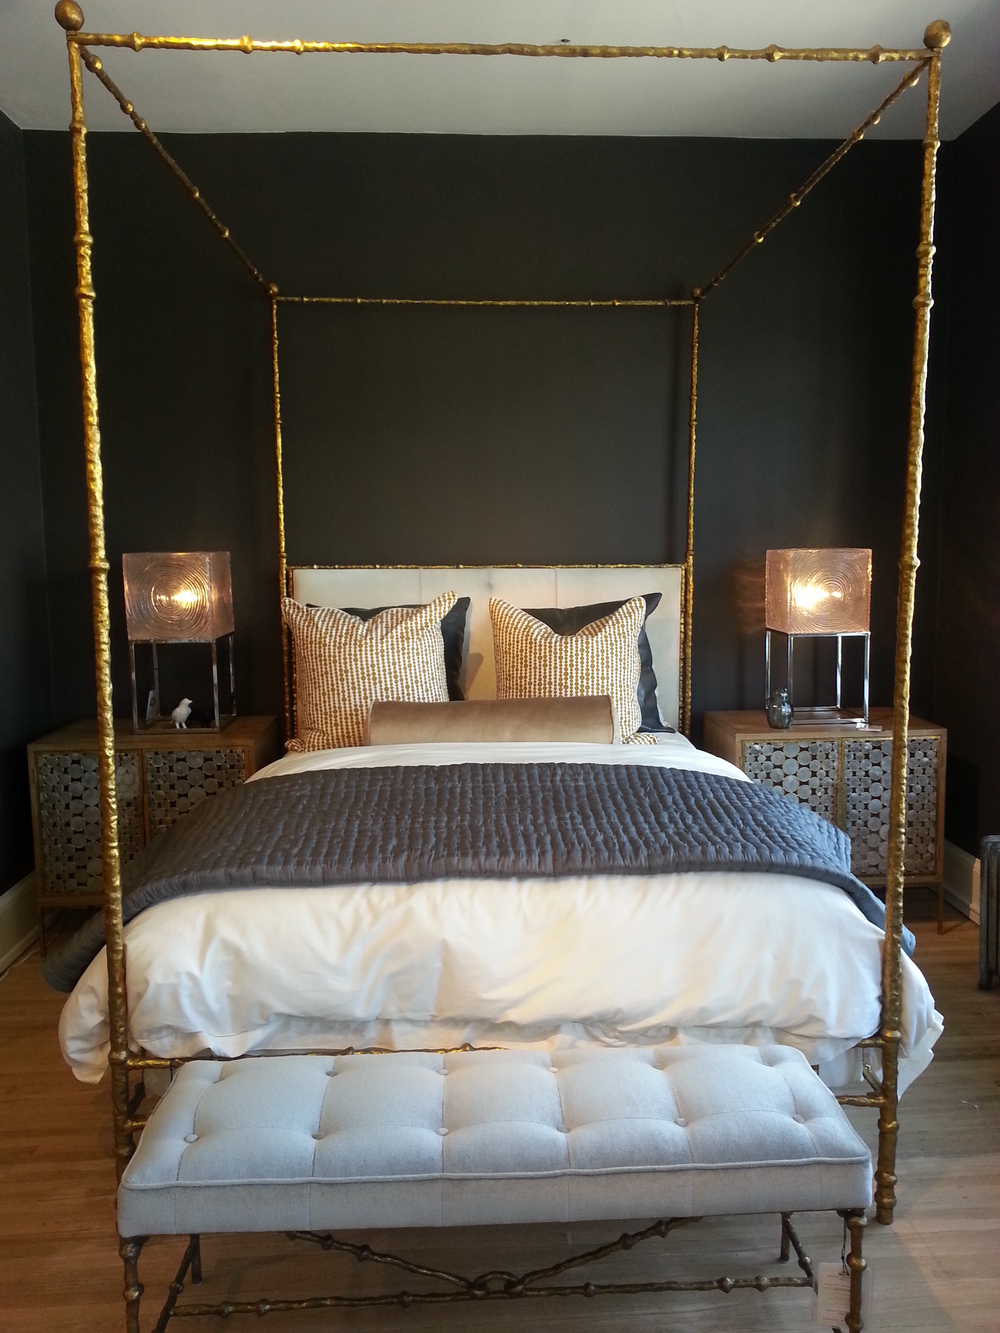 A gold four poster bed, yes, please.